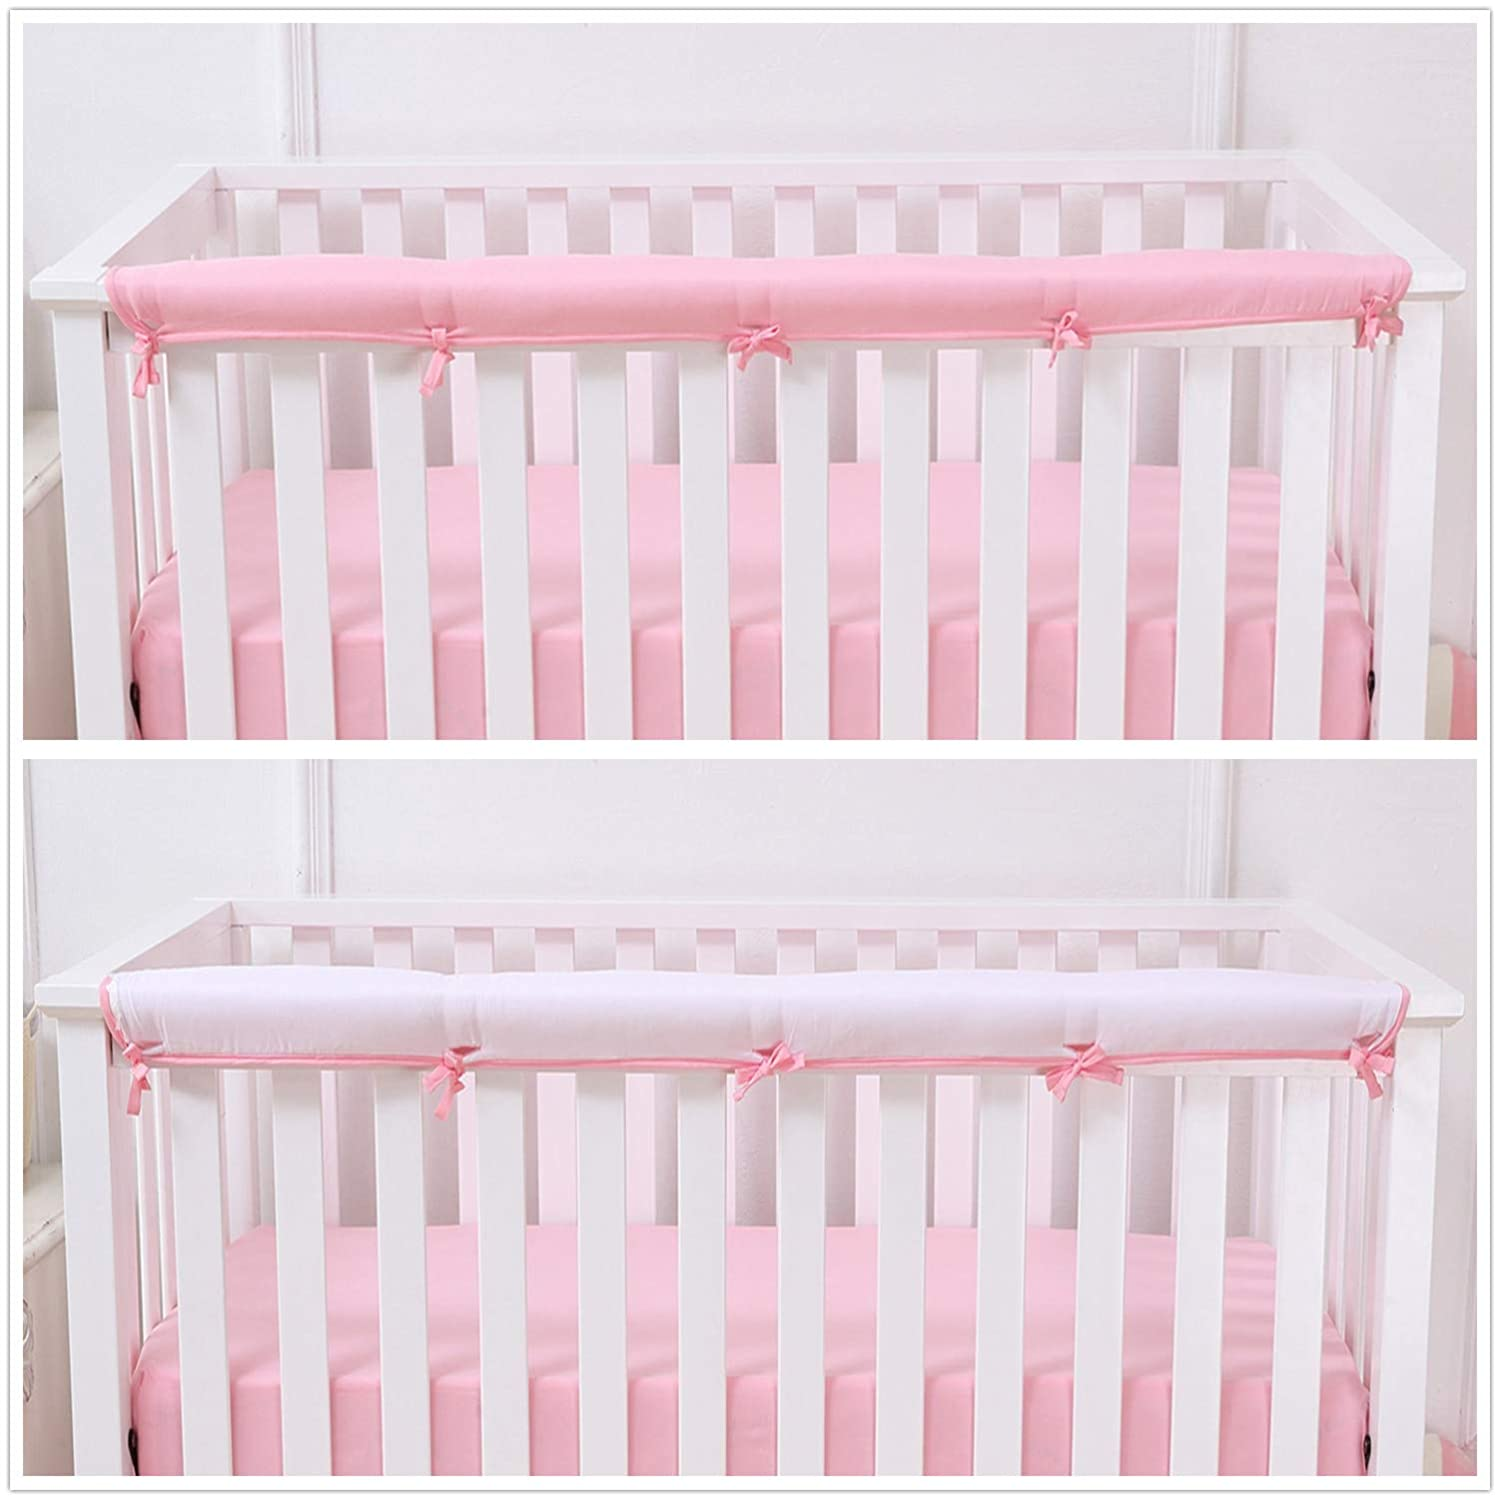 Measuring up to 8 Round Belsden Soft Reversible Long Crib Rail Cover Made of Brushed Microfiber Fabric Breathable and Hypoallergenic Baby Teething Guard Chewing Protector Gray and White Colors